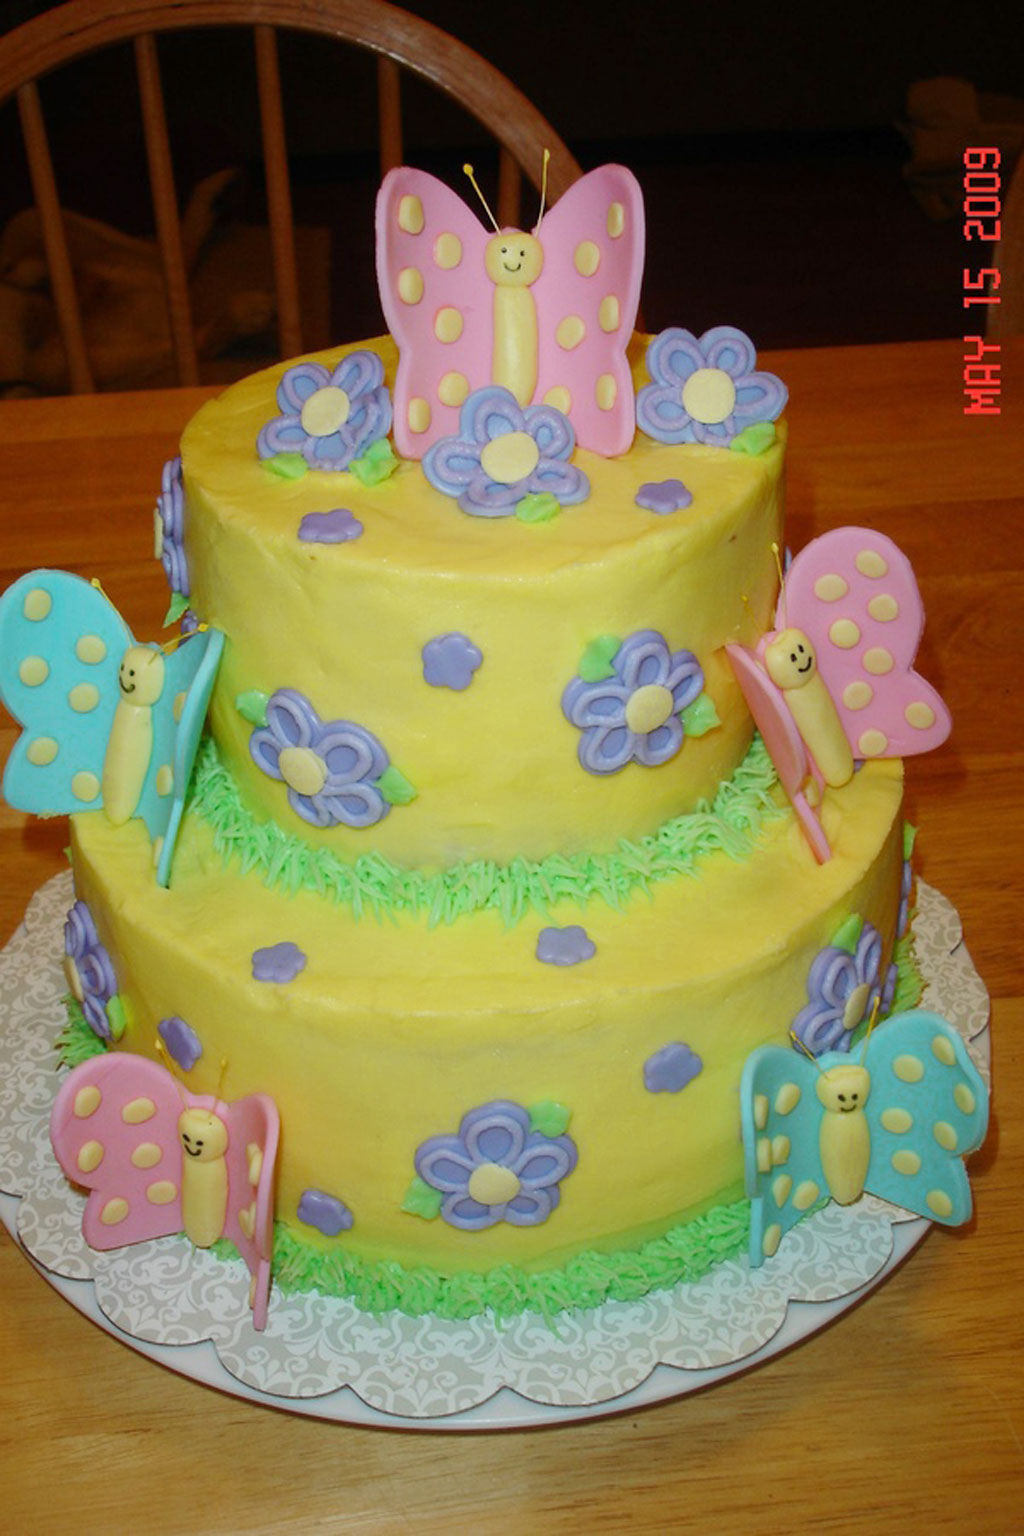 Cake Ideas Birthday Girl : Butterfly Birthday Cake For A Little Girl Birthday Cake ...